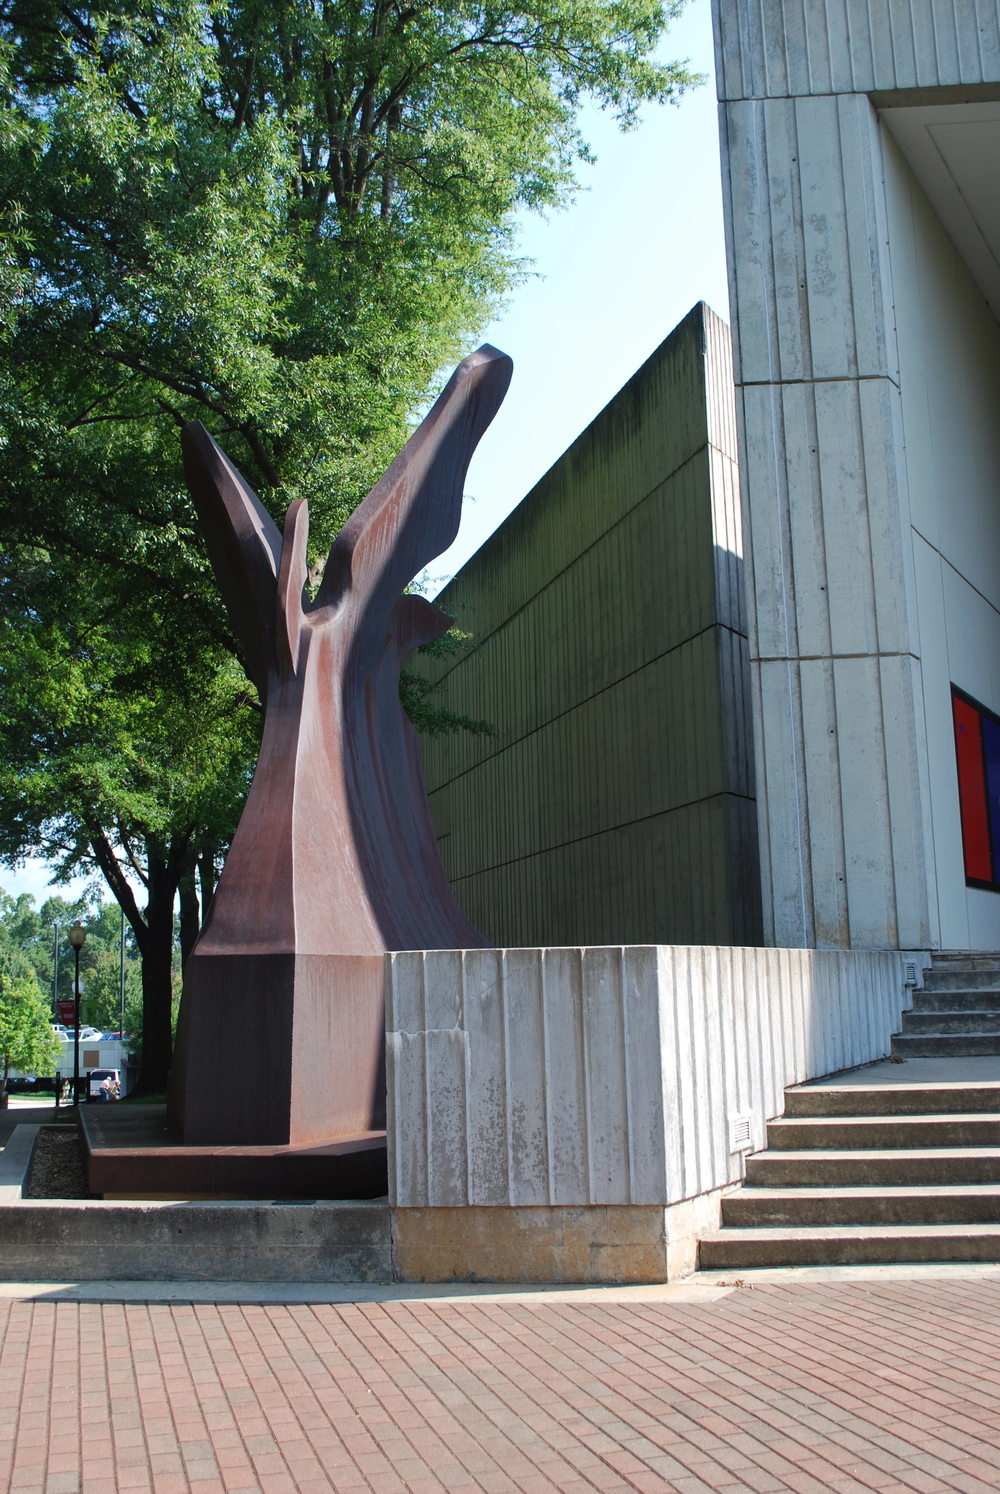 I have always loved this Richard Hunt sculpture that greets one at the entrance of the museum.